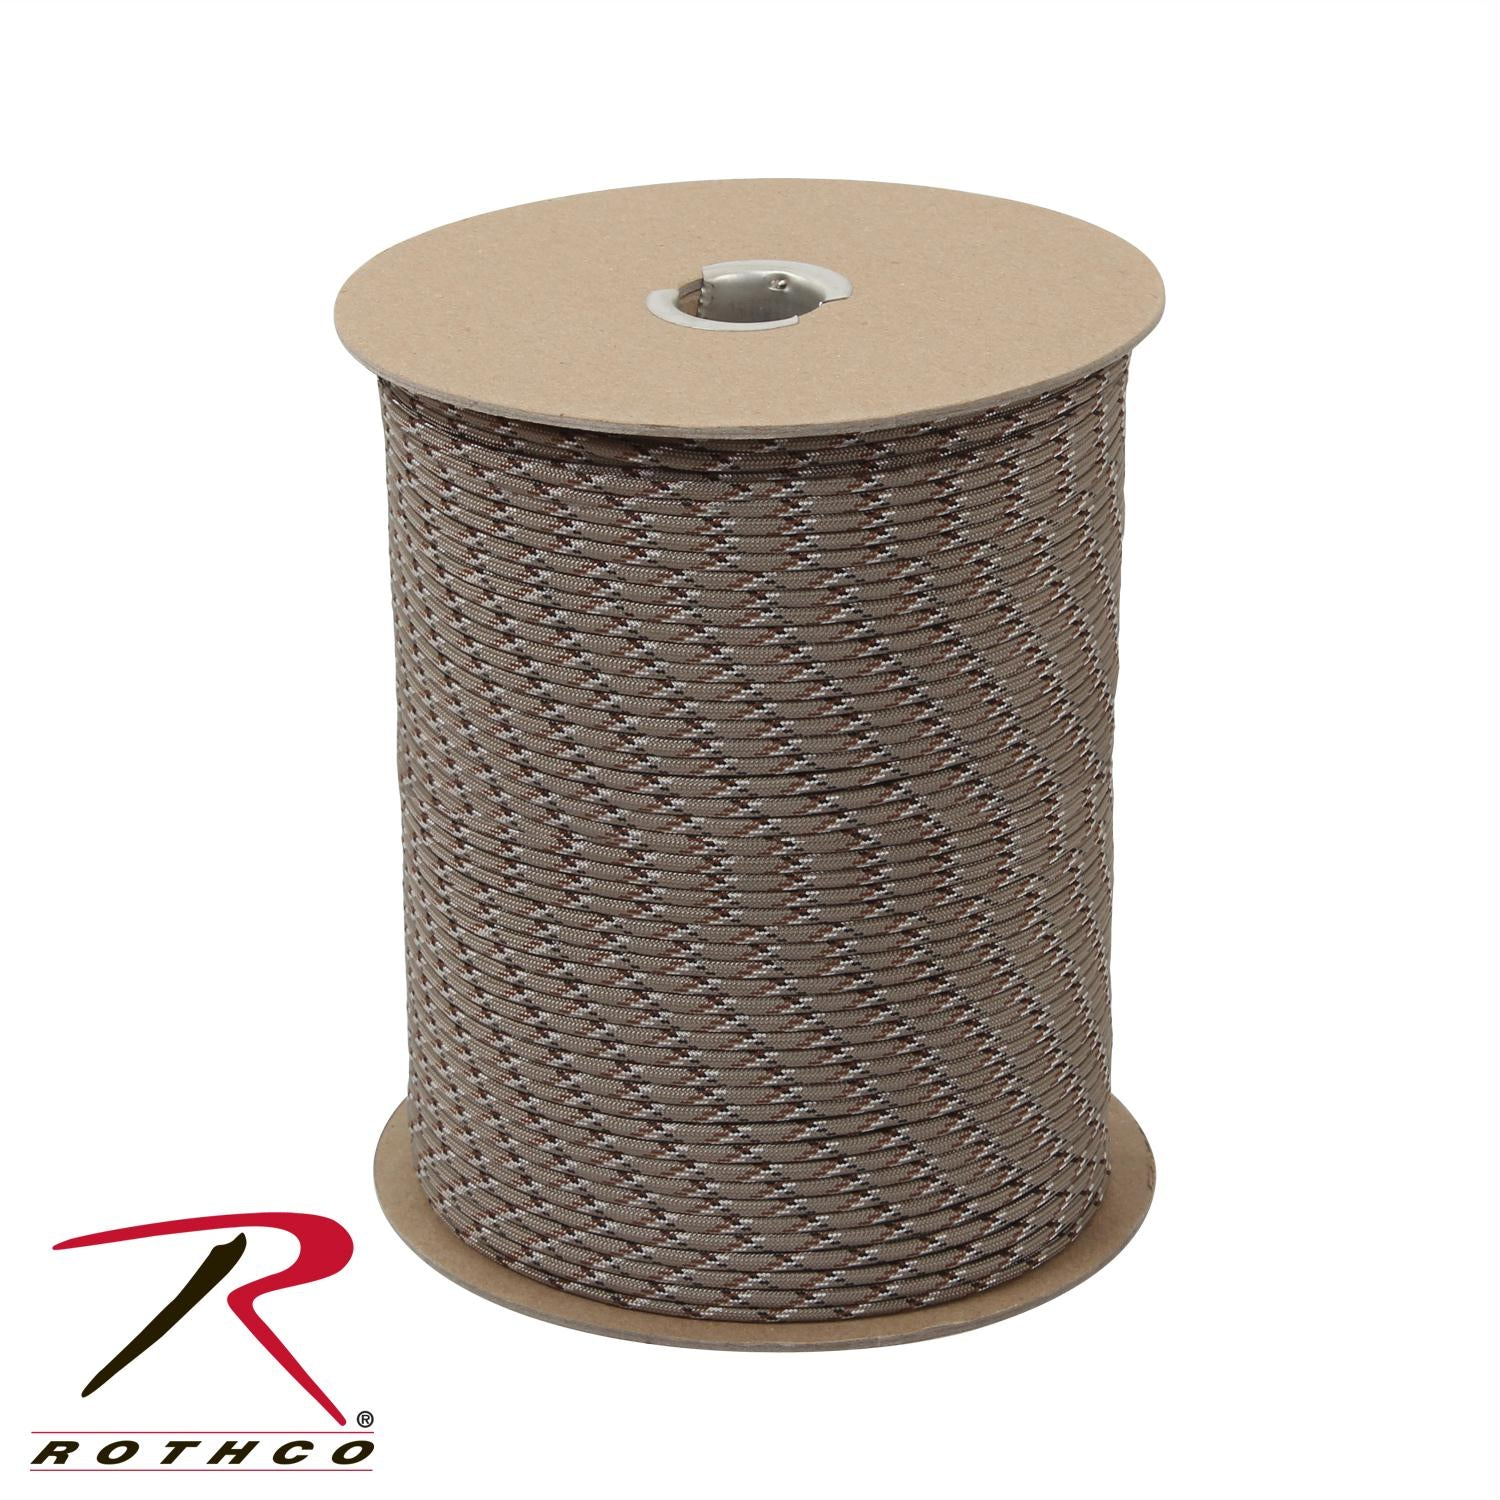 Rothco Nylon Paracord 550lb 1000 Ft Spool - Desert Camo / Tan